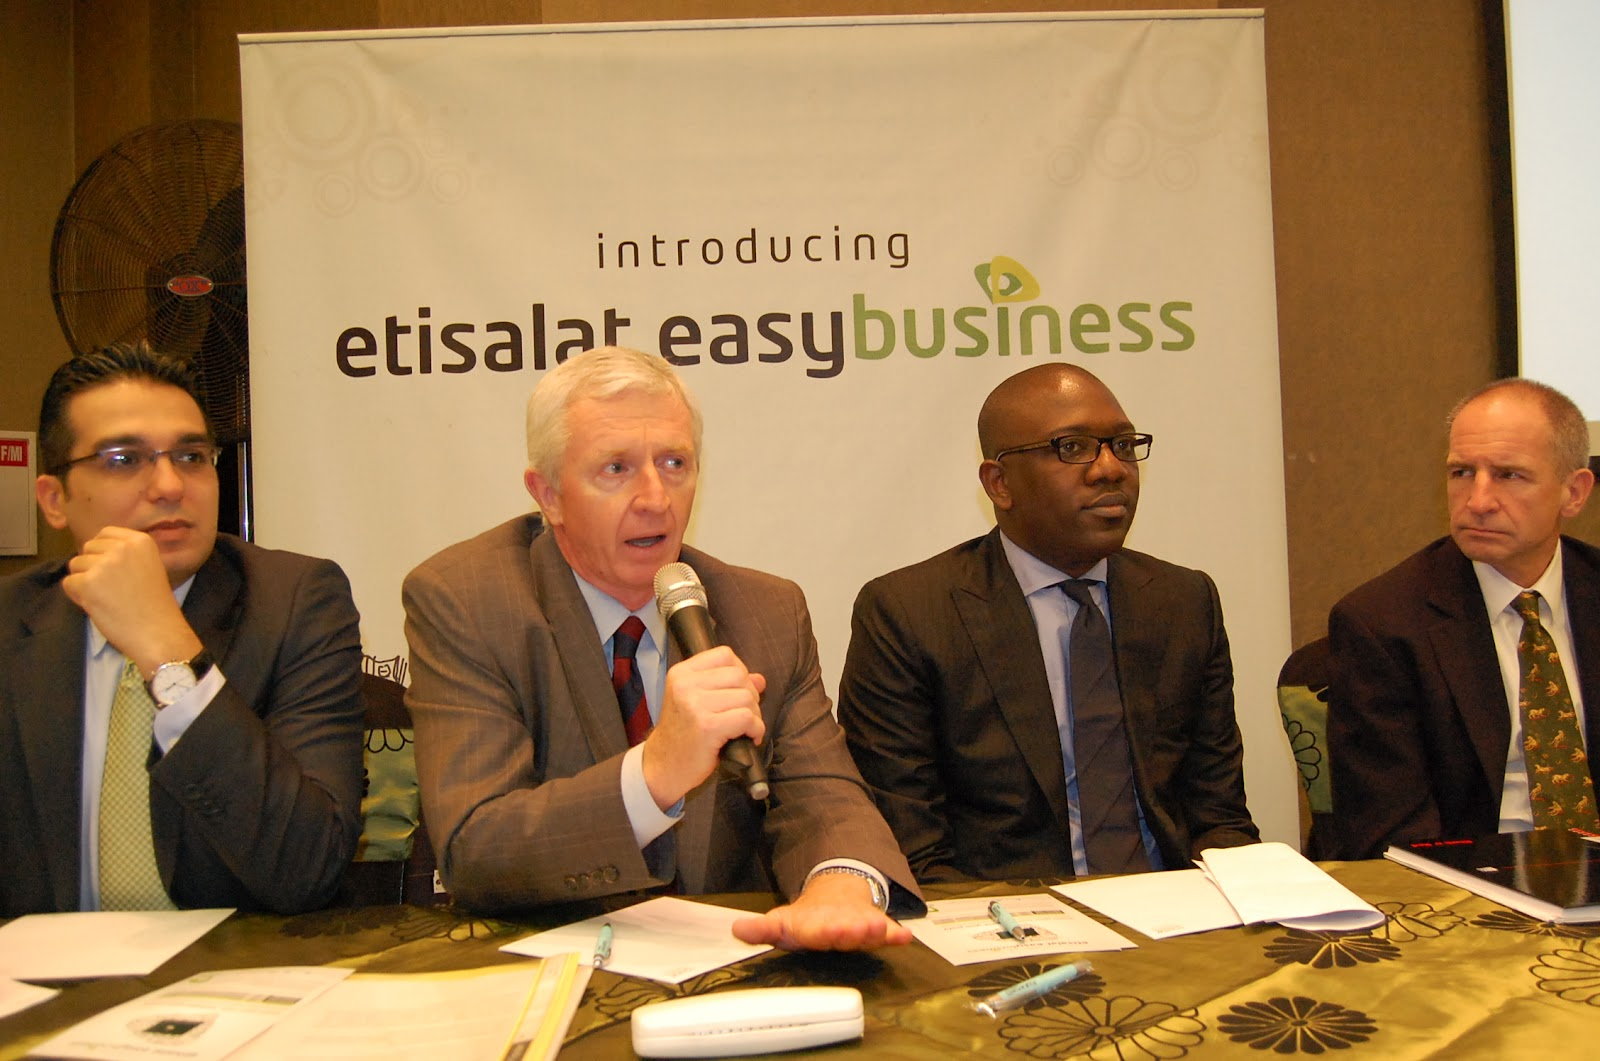 etisalat introduces easybusiness